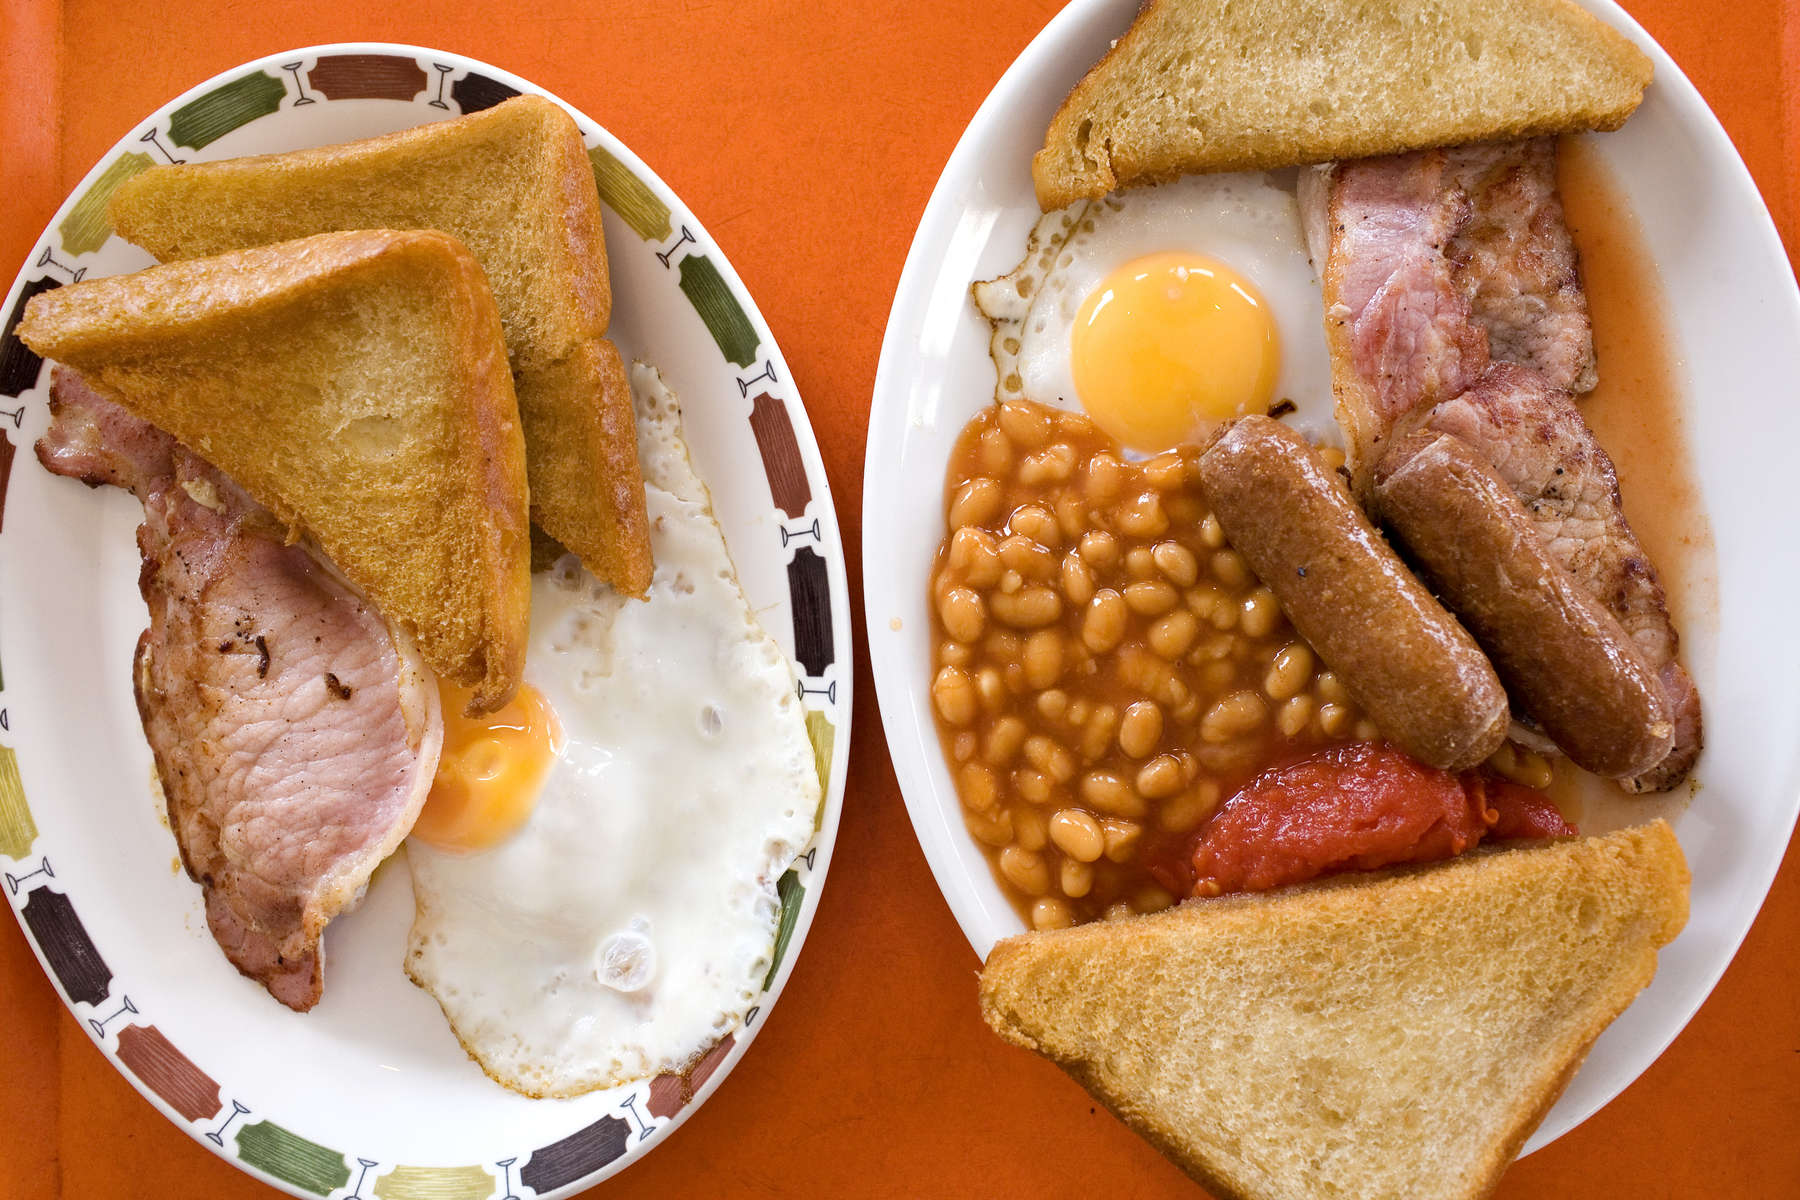 Two traditional English Breakfasts served on a tray in a cafe in Blackpool. At the heart of the breakfast is bacon and eggs and usually accompanied by a choice of fried bread, toast, tomatos, beans and mushrooms.